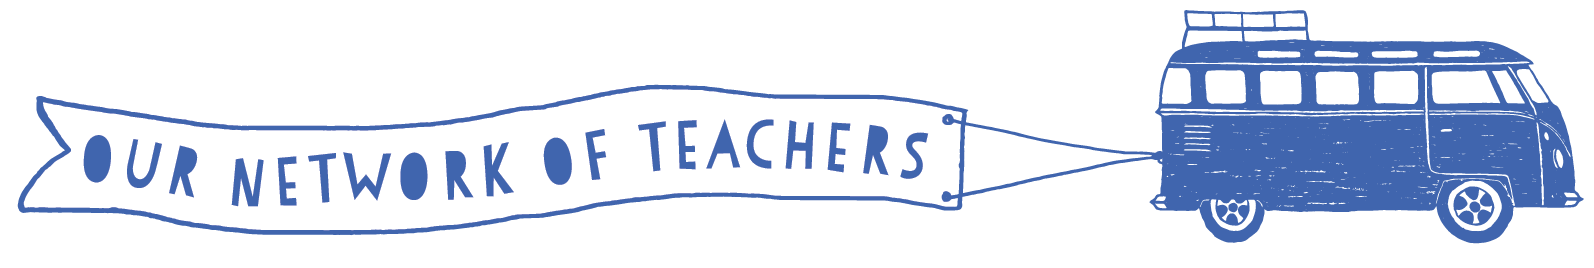 our network of teachers